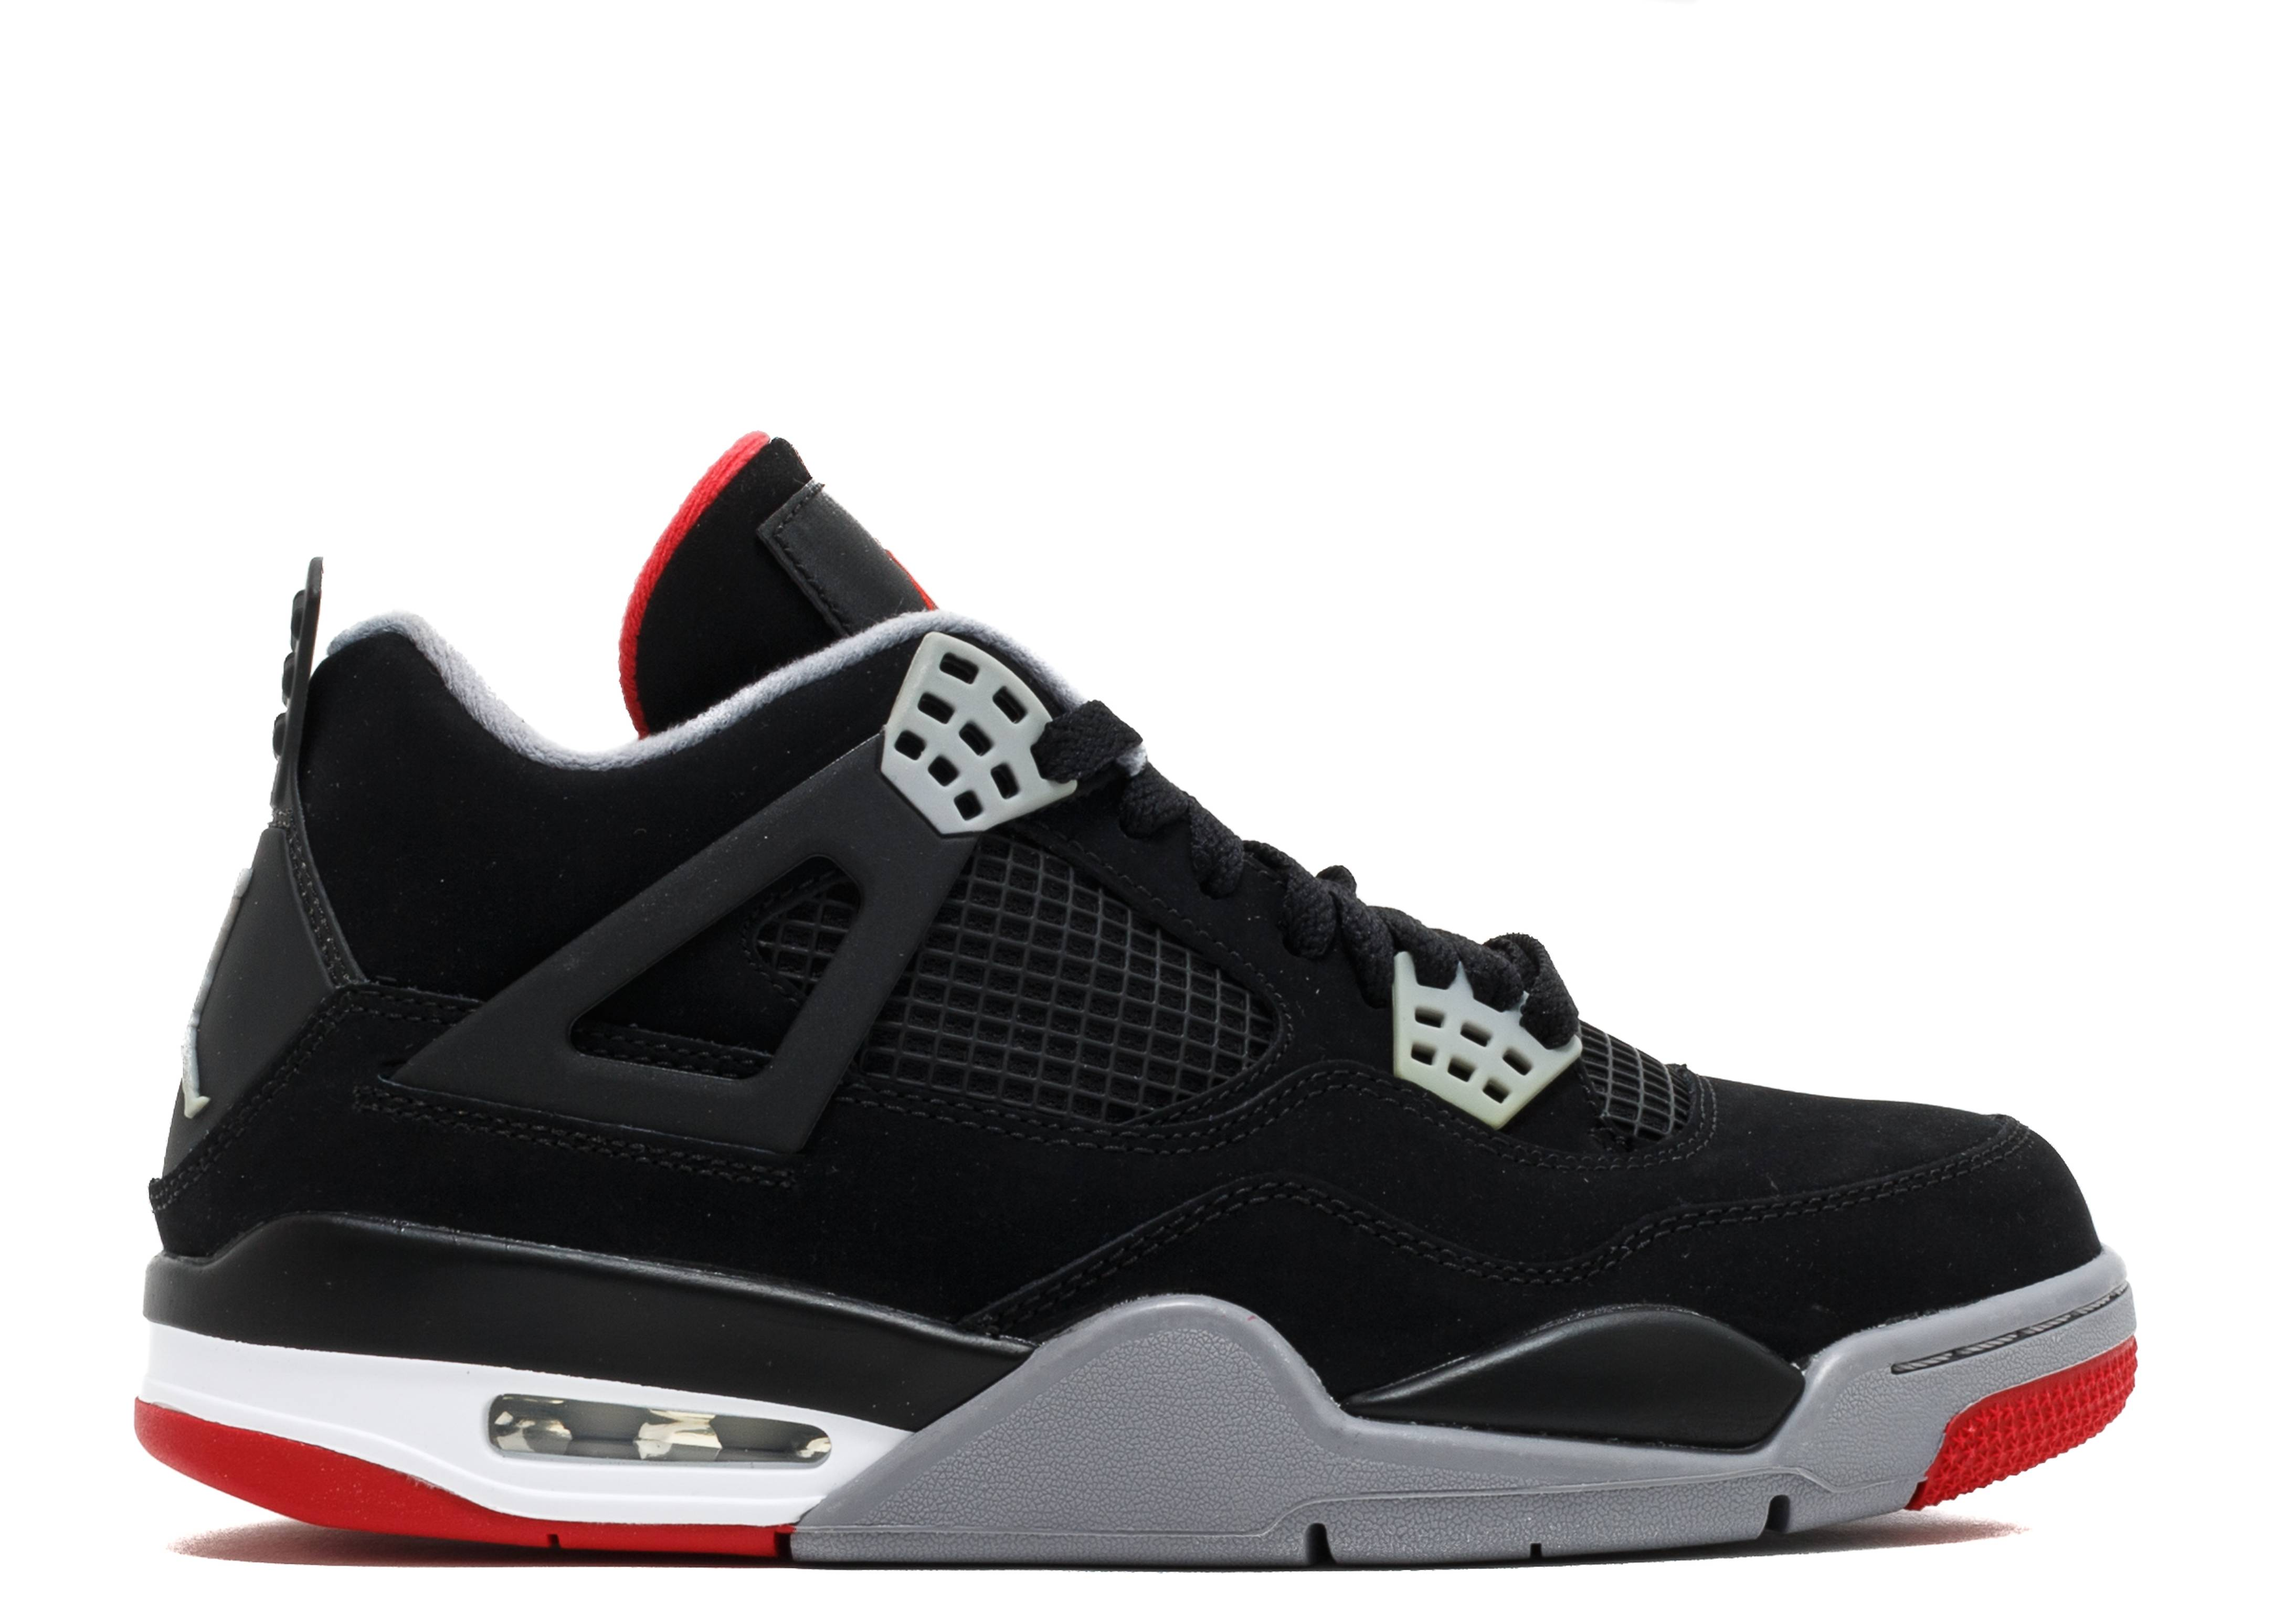 7db1a9c076c Air Jordan 4 Retro